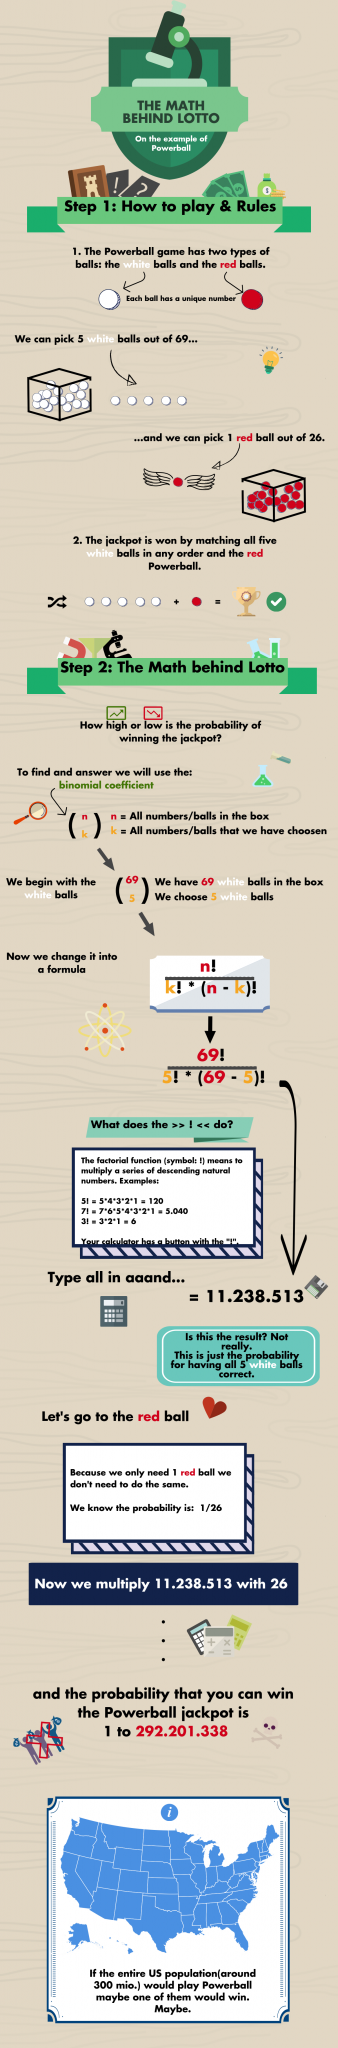 freegenday.com infographic